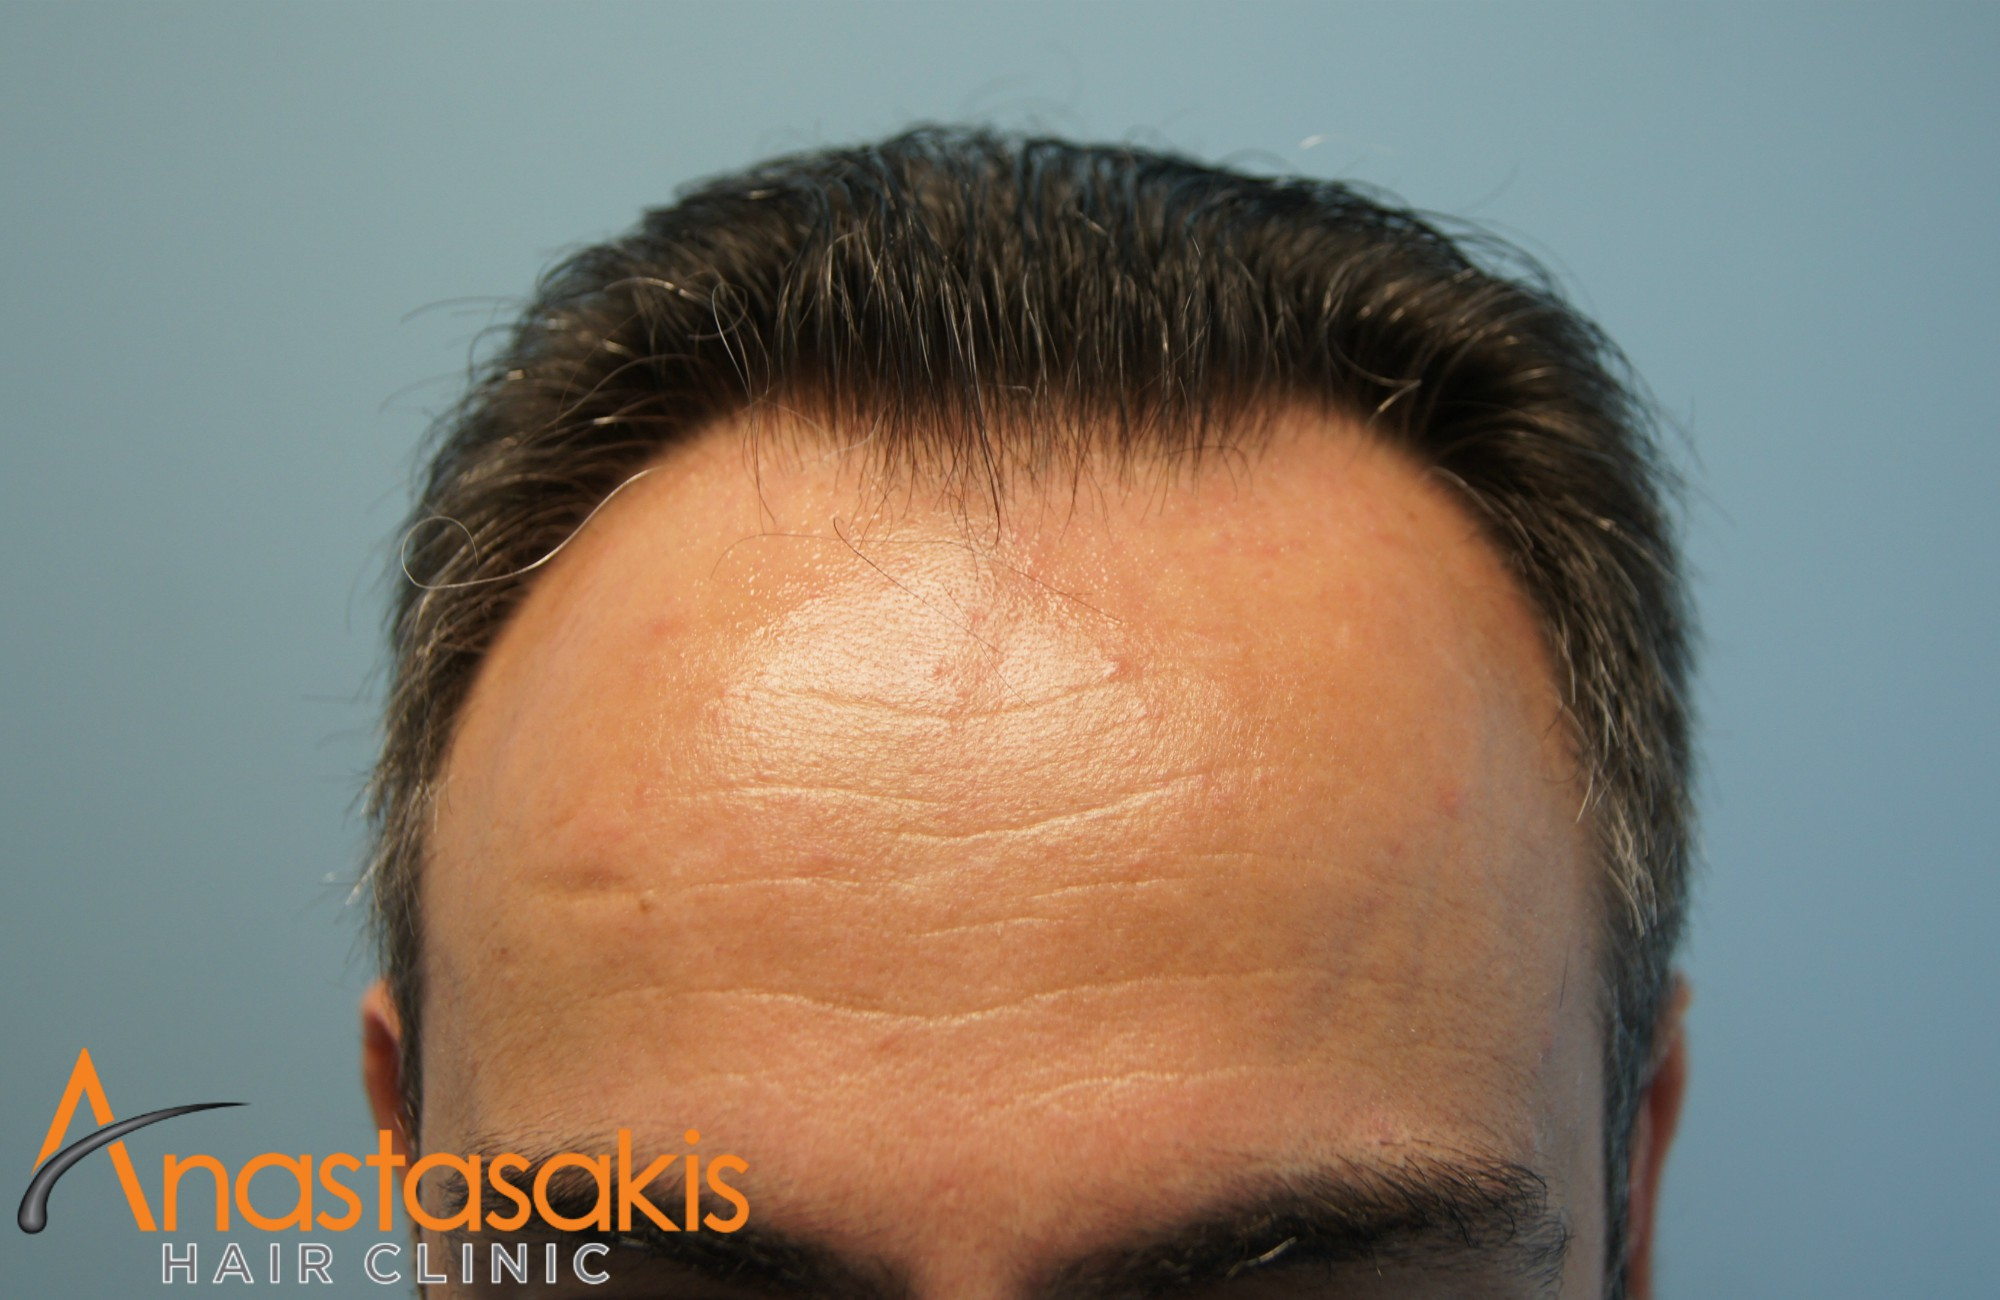 2800fus-fut-mm-anastasakis-hair-clinic-RESULT